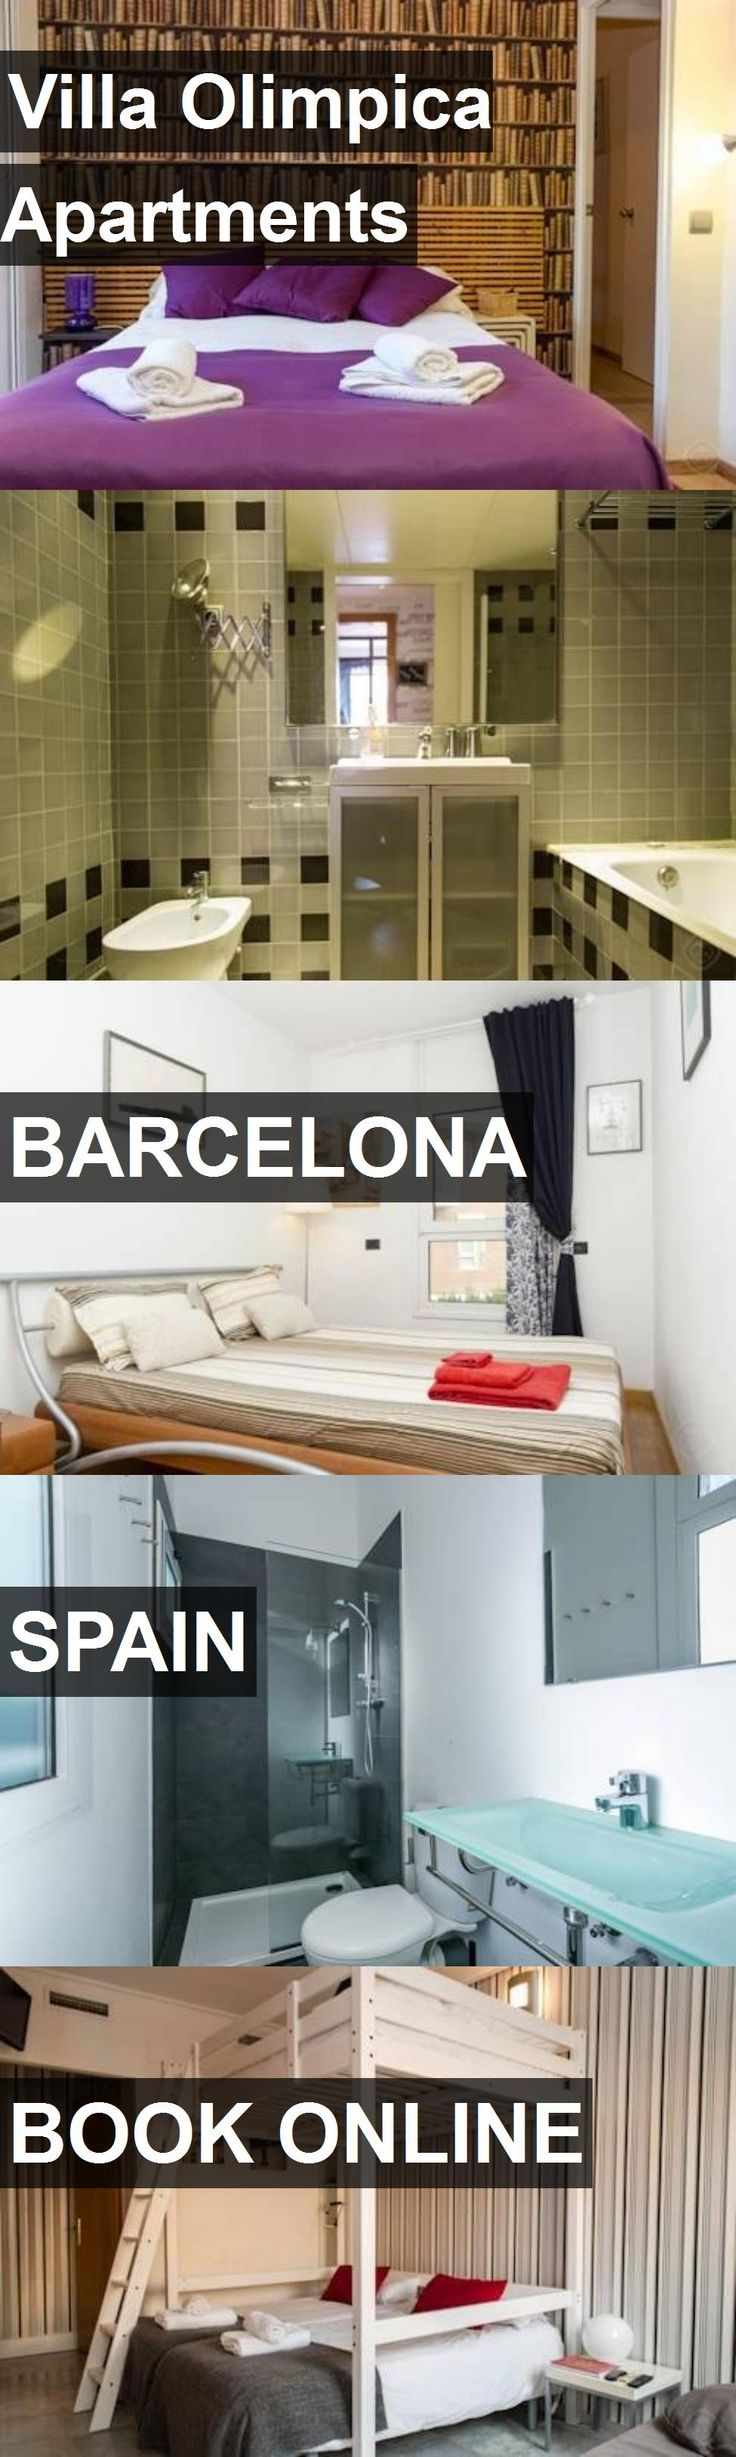 Hotel Villa Olimpica Apartments in Barcelona, Spain. For more information, photos, reviews and best prices please follow the link. #Spain #Barcelona #VillaOlimpicaApartments #hotel #travel #vacation